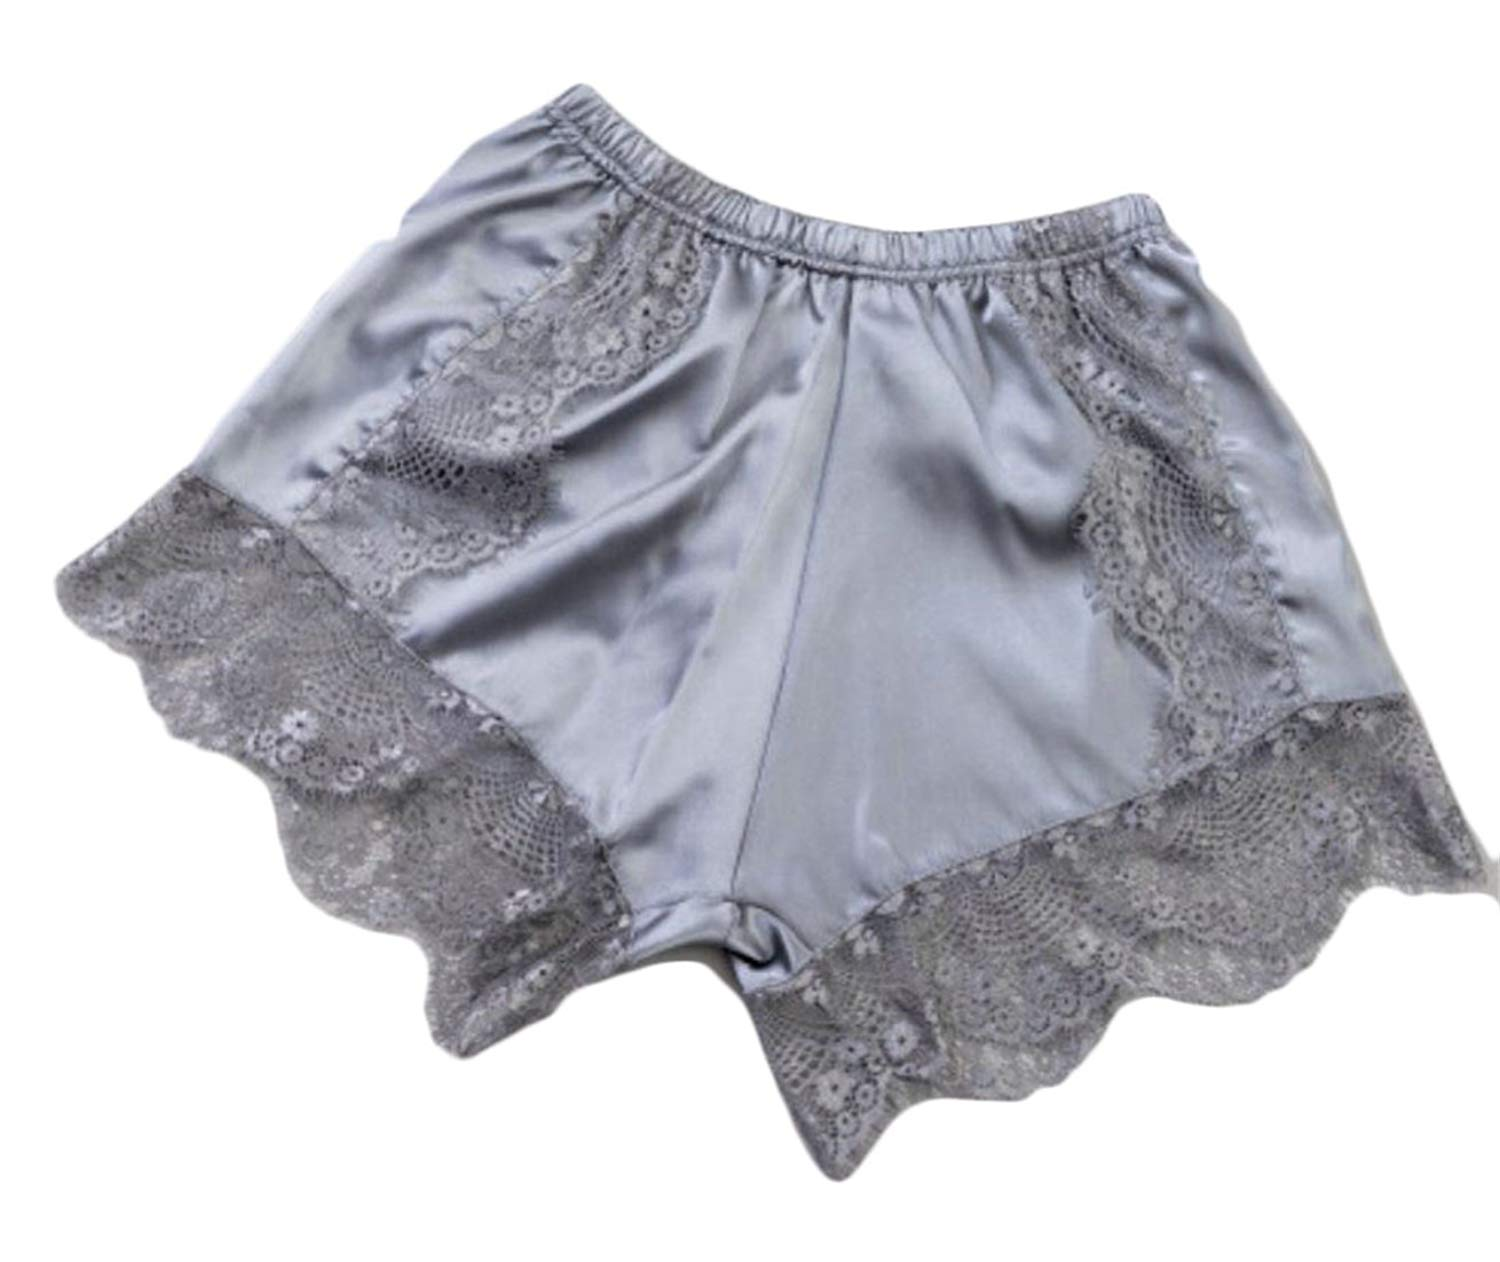 4699eabf6e9d Get Quotations · Pandapang Women Lace Boyshort Brief Panty Shorts Trim Silk  Satin Panties